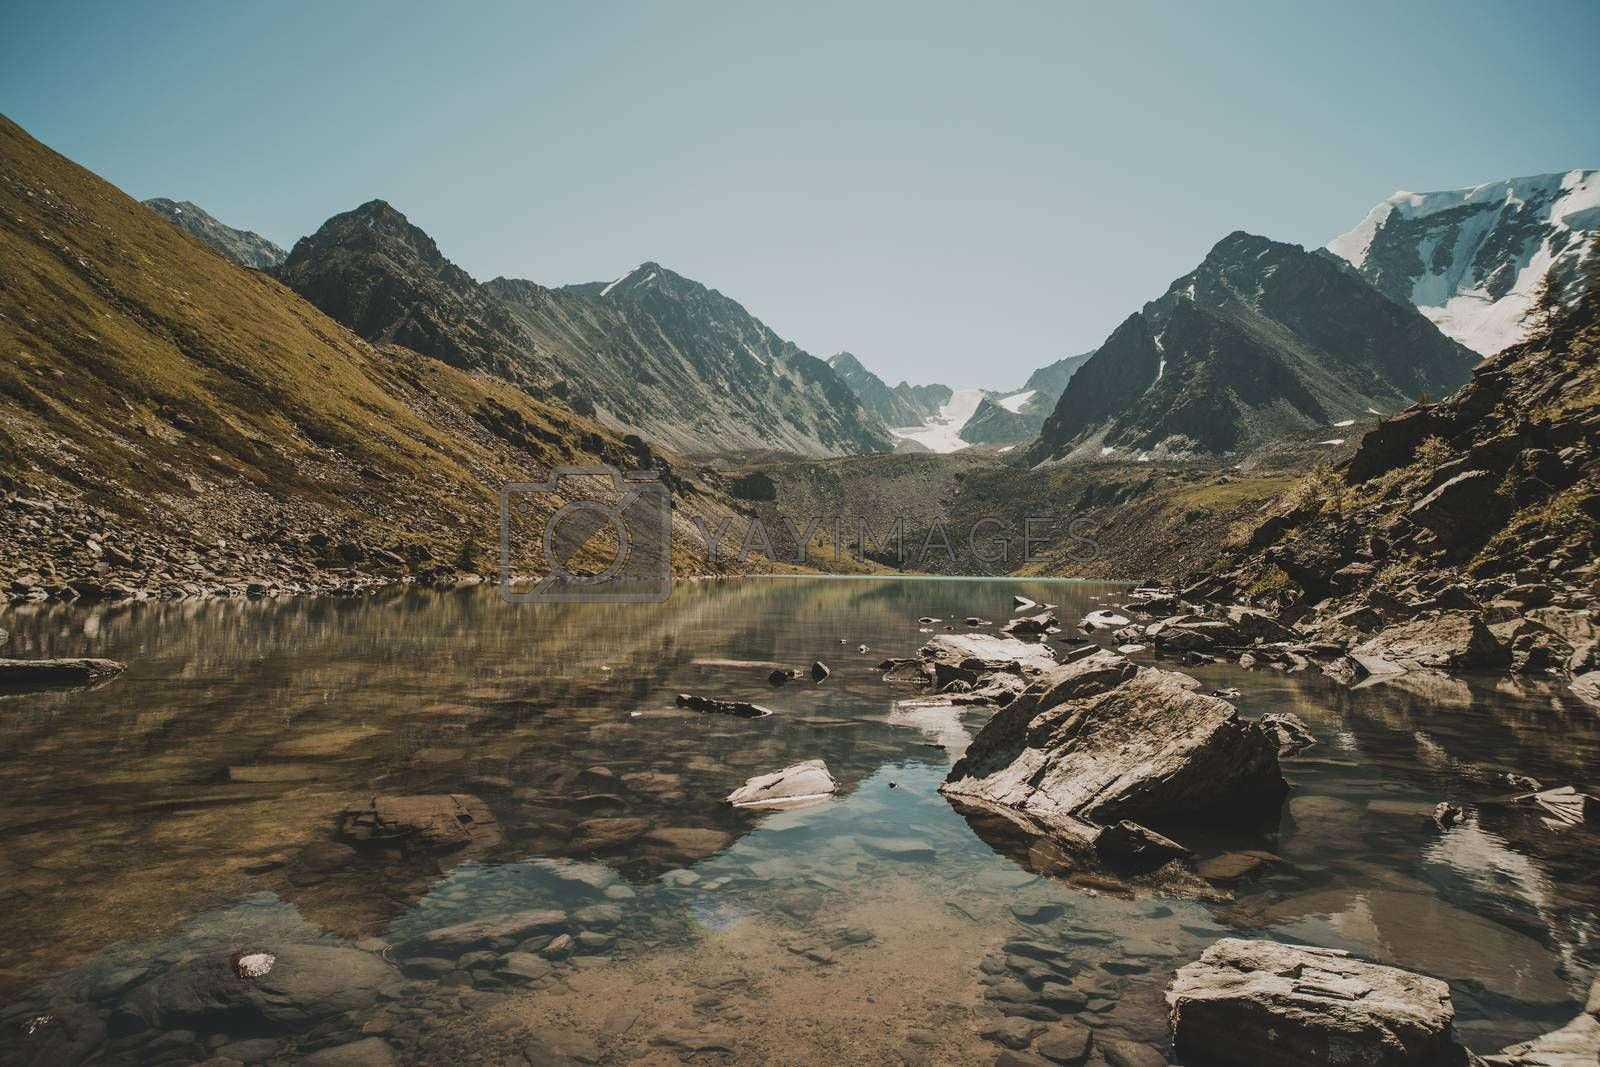 Royalty free image of Altai forest reflect on the lake. beautiful landscape in morning time with warm tone. Beautiful calm landscape in the mountains without people. Wildlife in Siberia. Russia by diy13